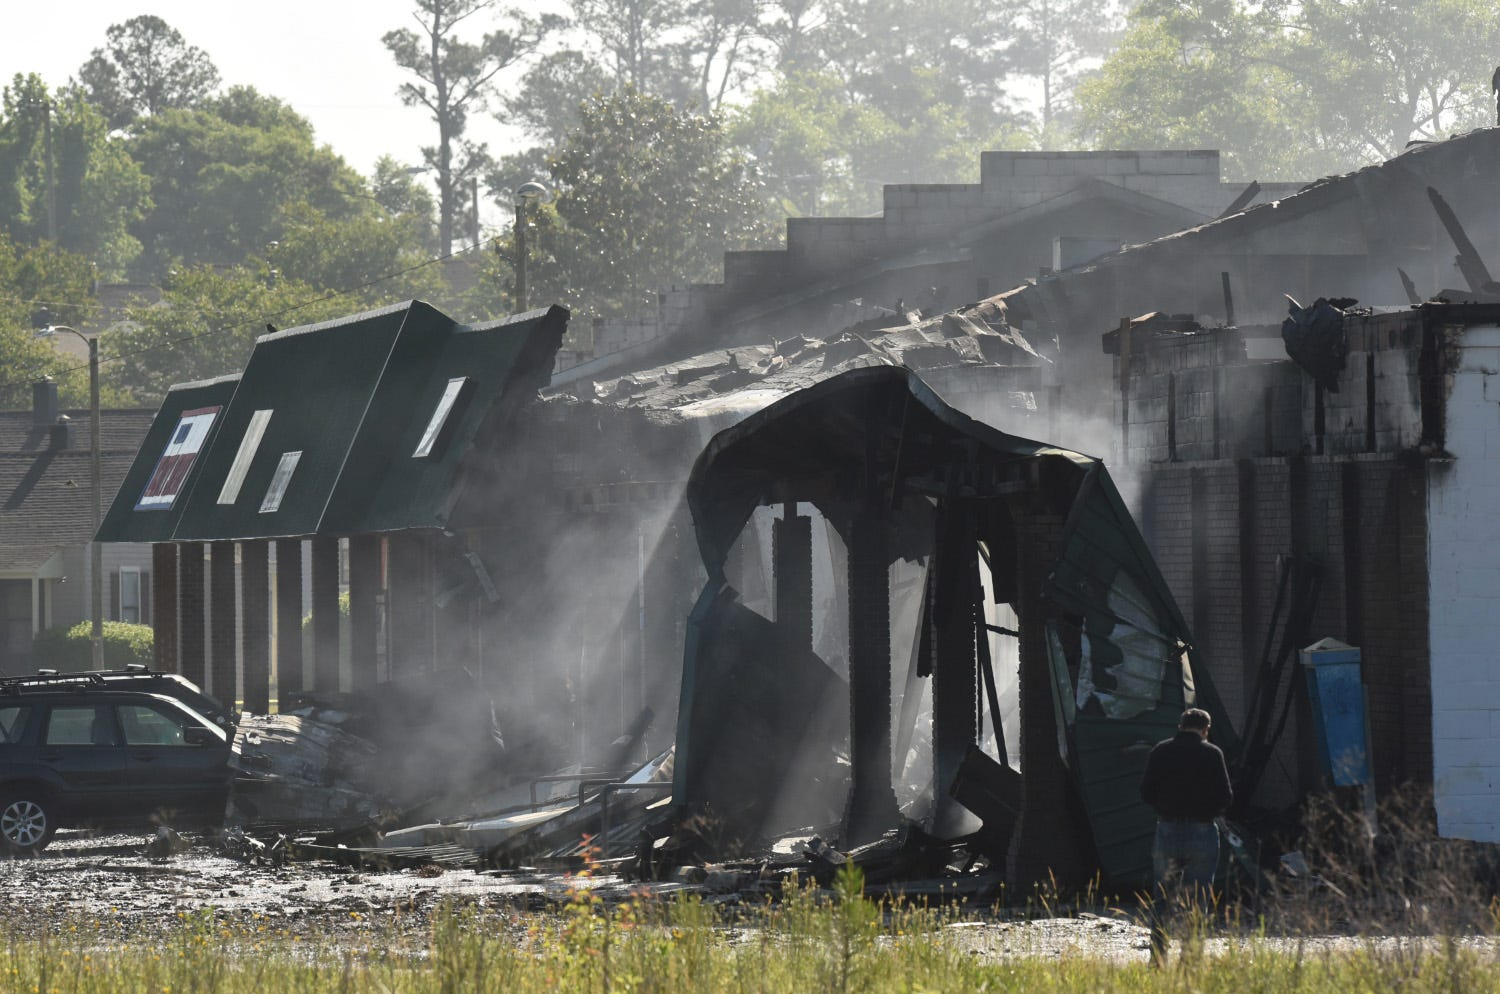 Wilmington Fire Department crews continue to look after the fire at Everybody's Supermarket, along Greenfield St. Thursday May 3, 2018 in Wilmington, N.C. The fire destroyed Village Plaza Shopping Center that included stores like Spiro's Breakfast and Lunch House and Quail's Quality Cuts.